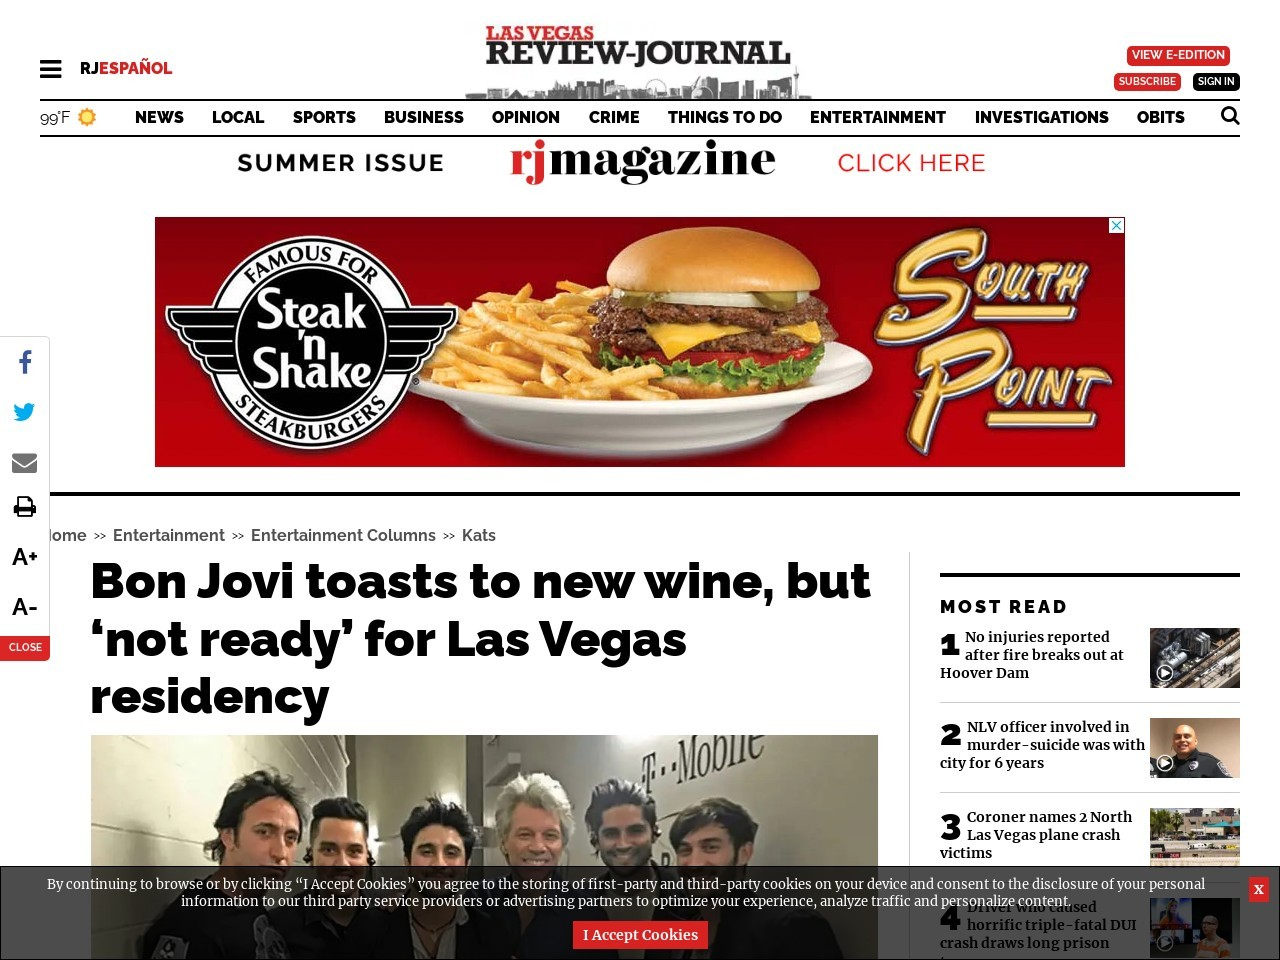 Bon Jovi toasts to new wine, but 'not ready' for Las Vegas residency